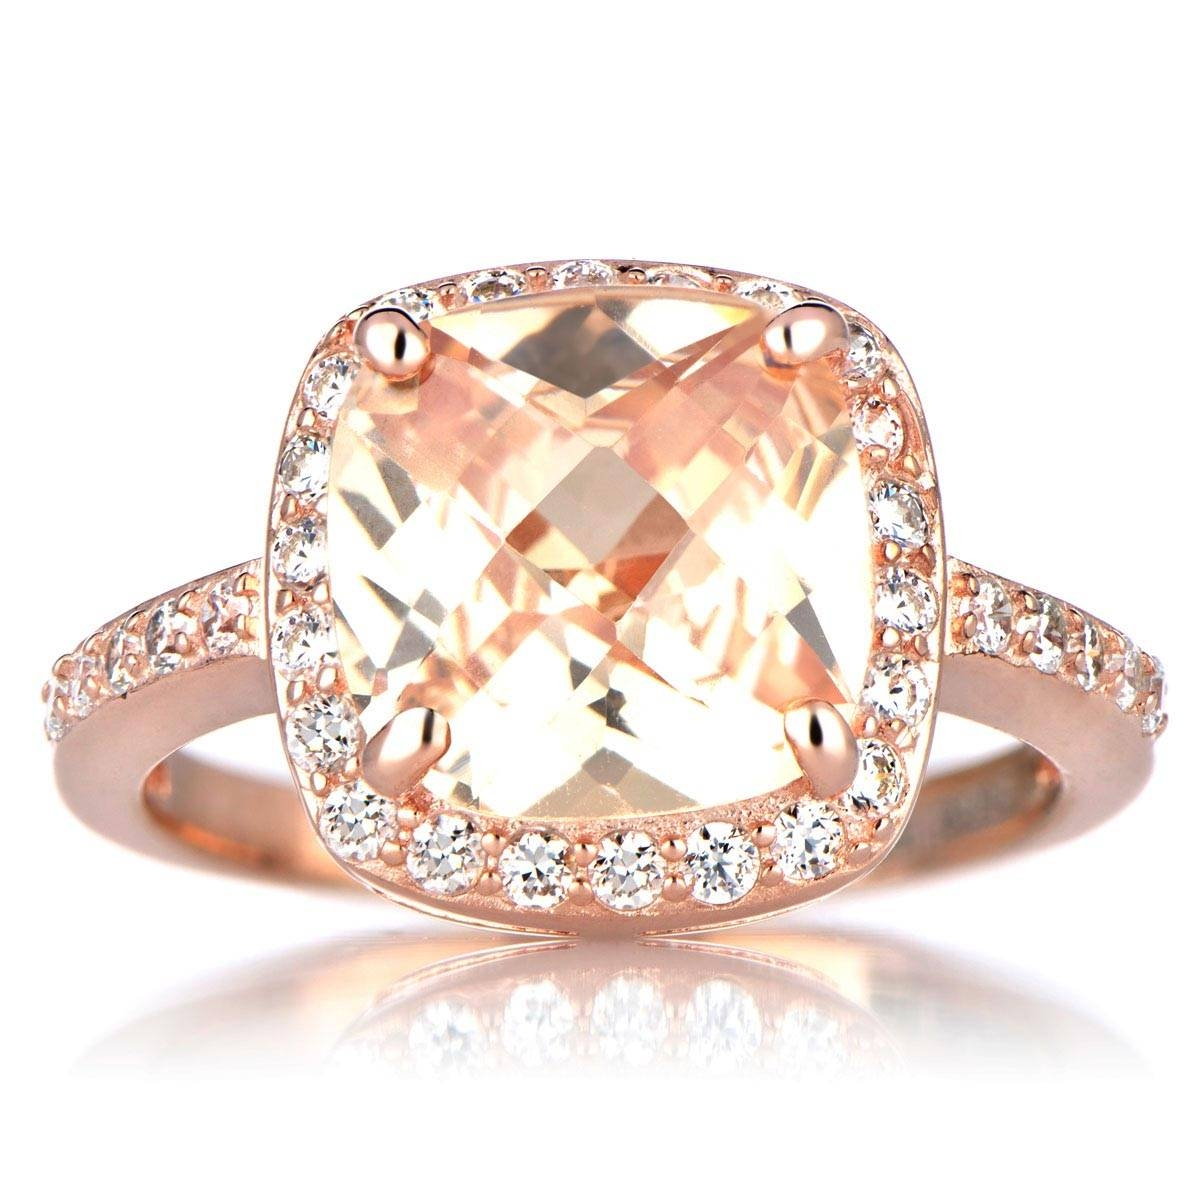 Engagement Rings : Awesome Vintage Engagement Rings Rose Gold Kirk Pertaining To Gold Rose Wedding Rings (View 6 of 15)